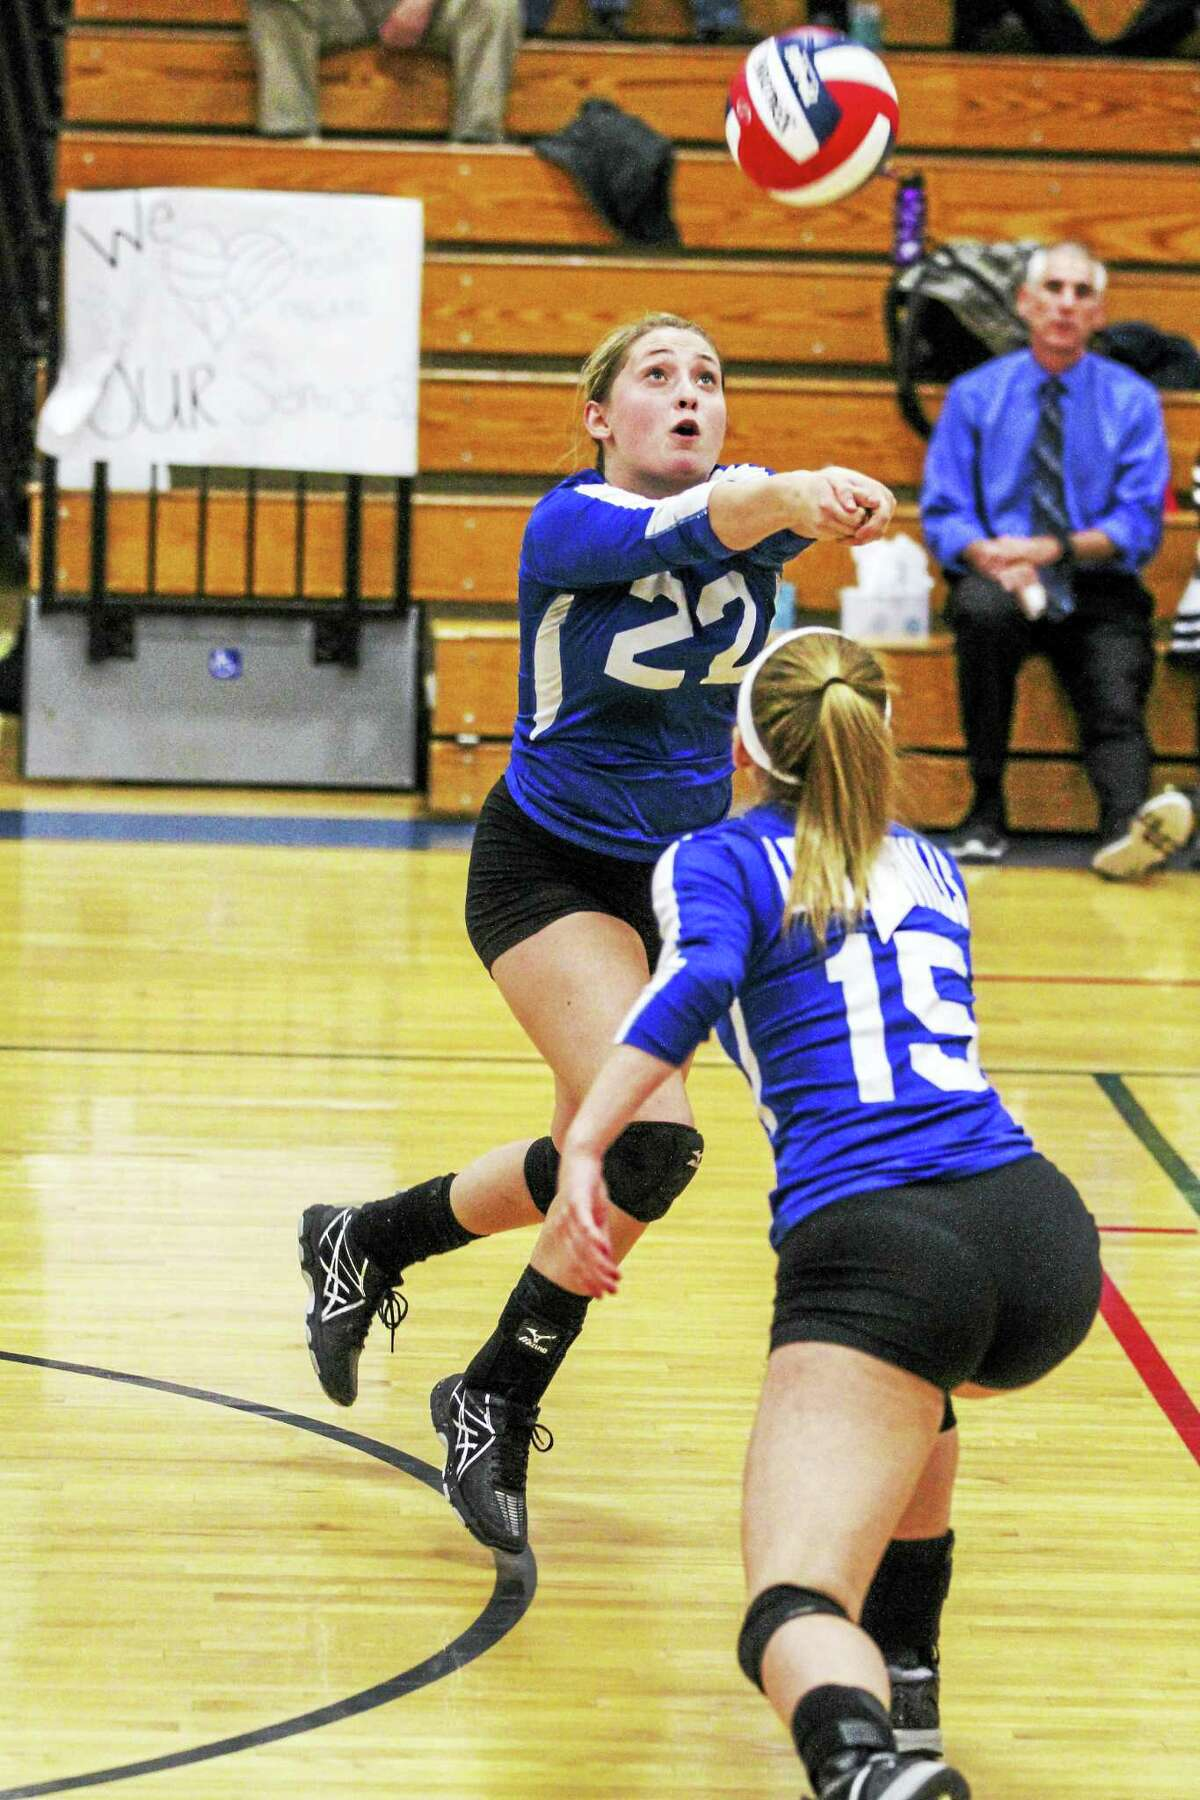 Lewis Mills setter Arlee Twitchell (22) had 28 assists in the Spartans' win over Ellington Wednesday night at Lewis Mills High School.